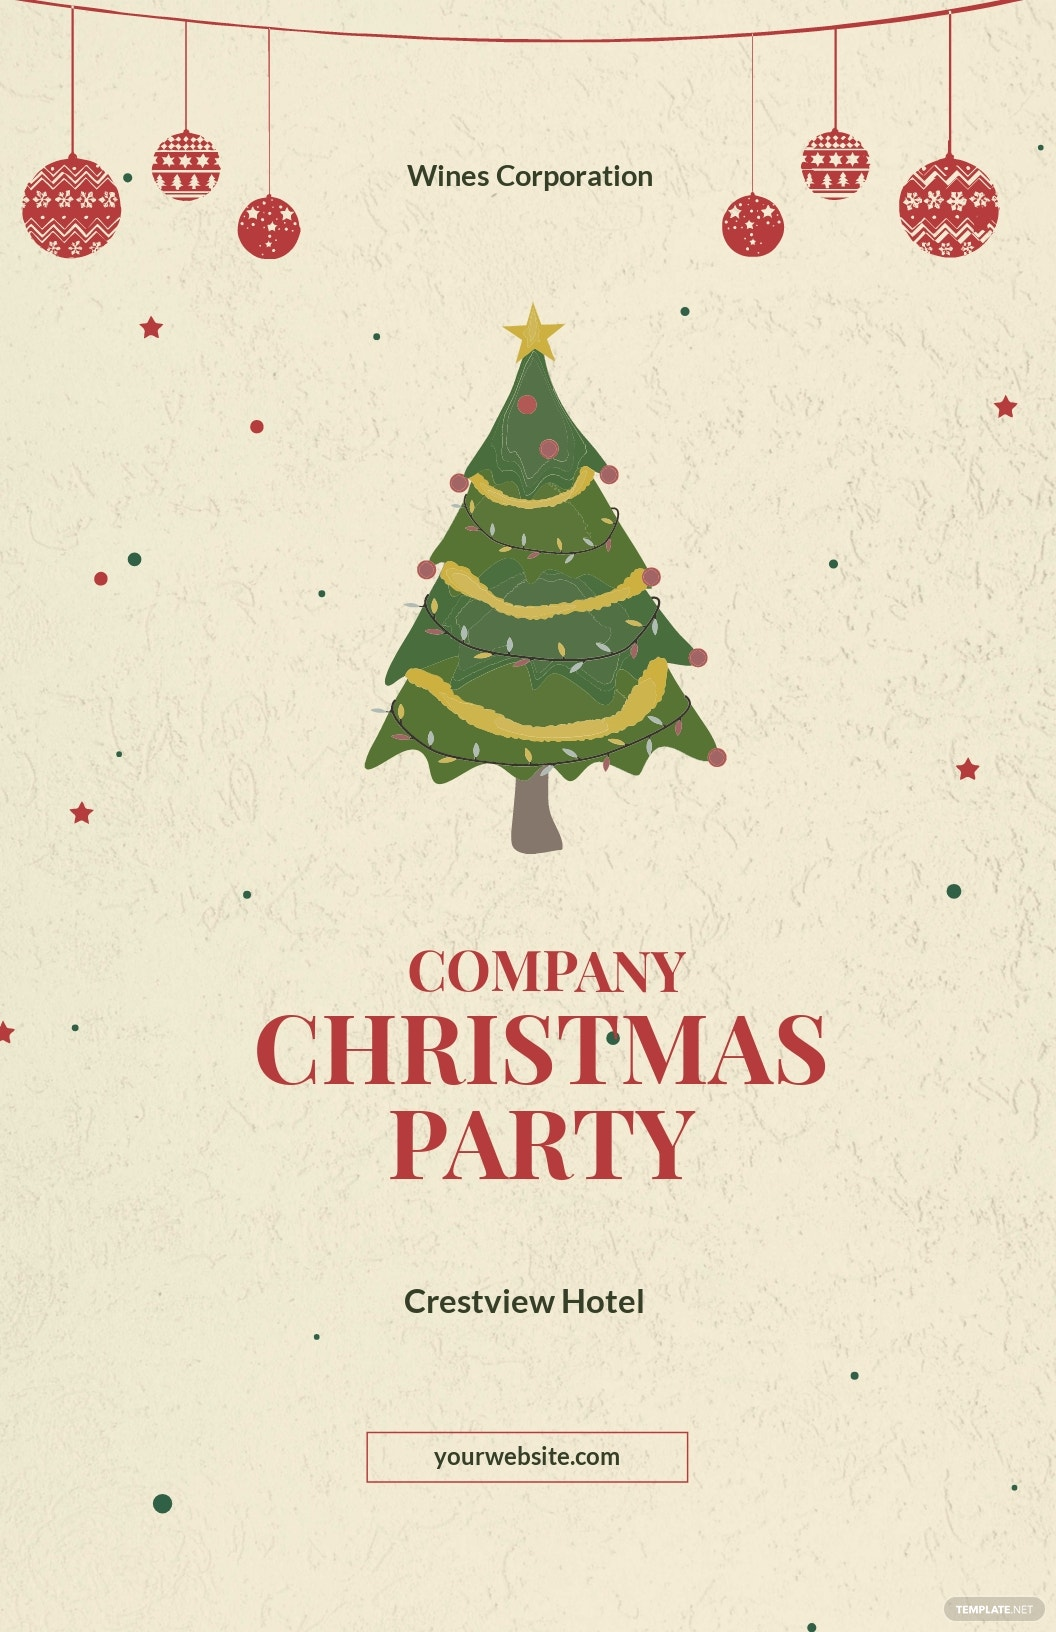 Free Simple Christmas Poster Template.jpe